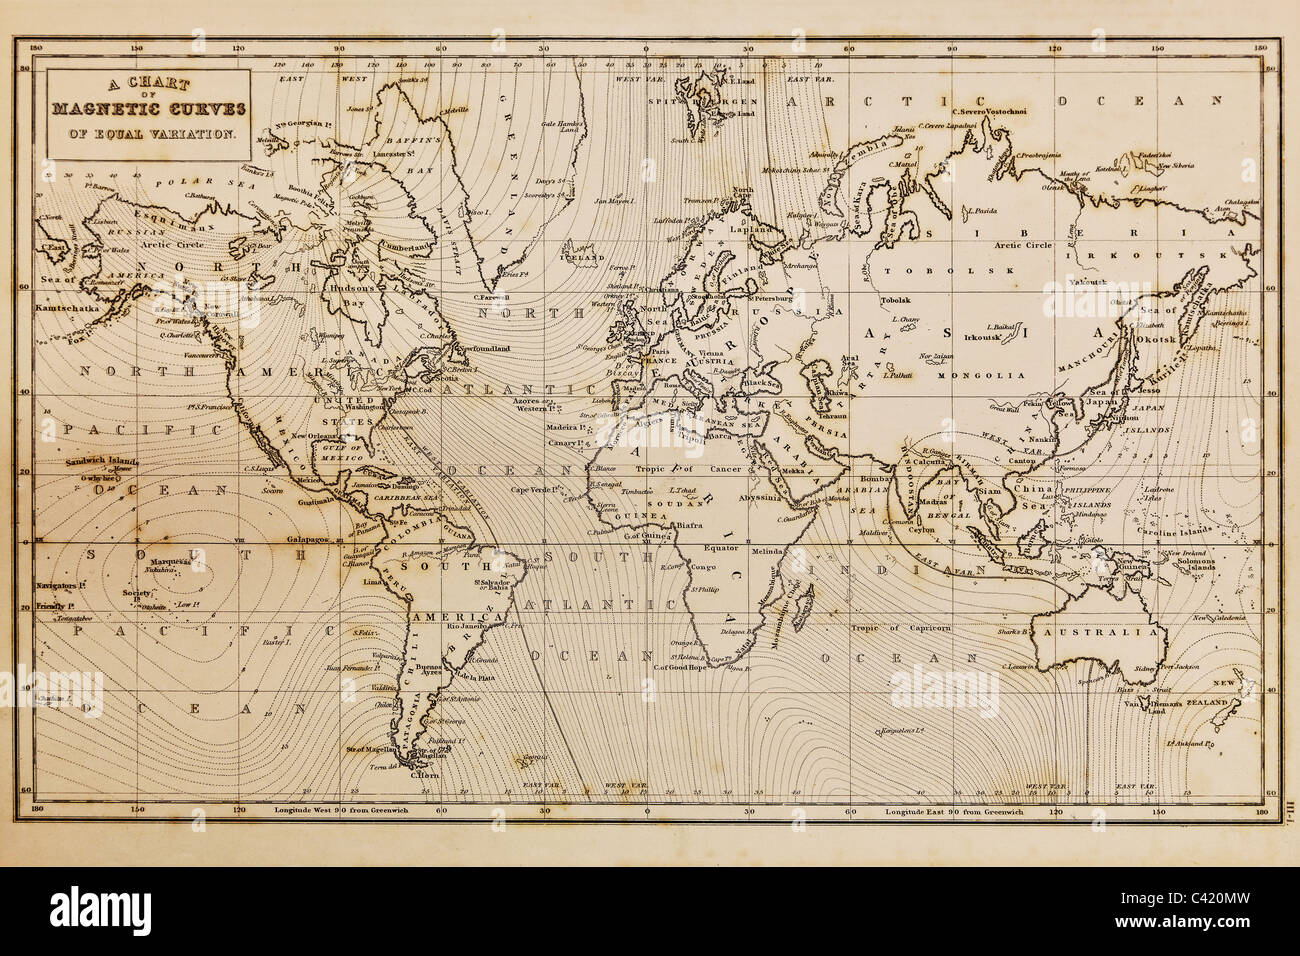 Photo d'une véritable carte du monde dessiné à la main, il a été tiré en 1844 Photo Stock